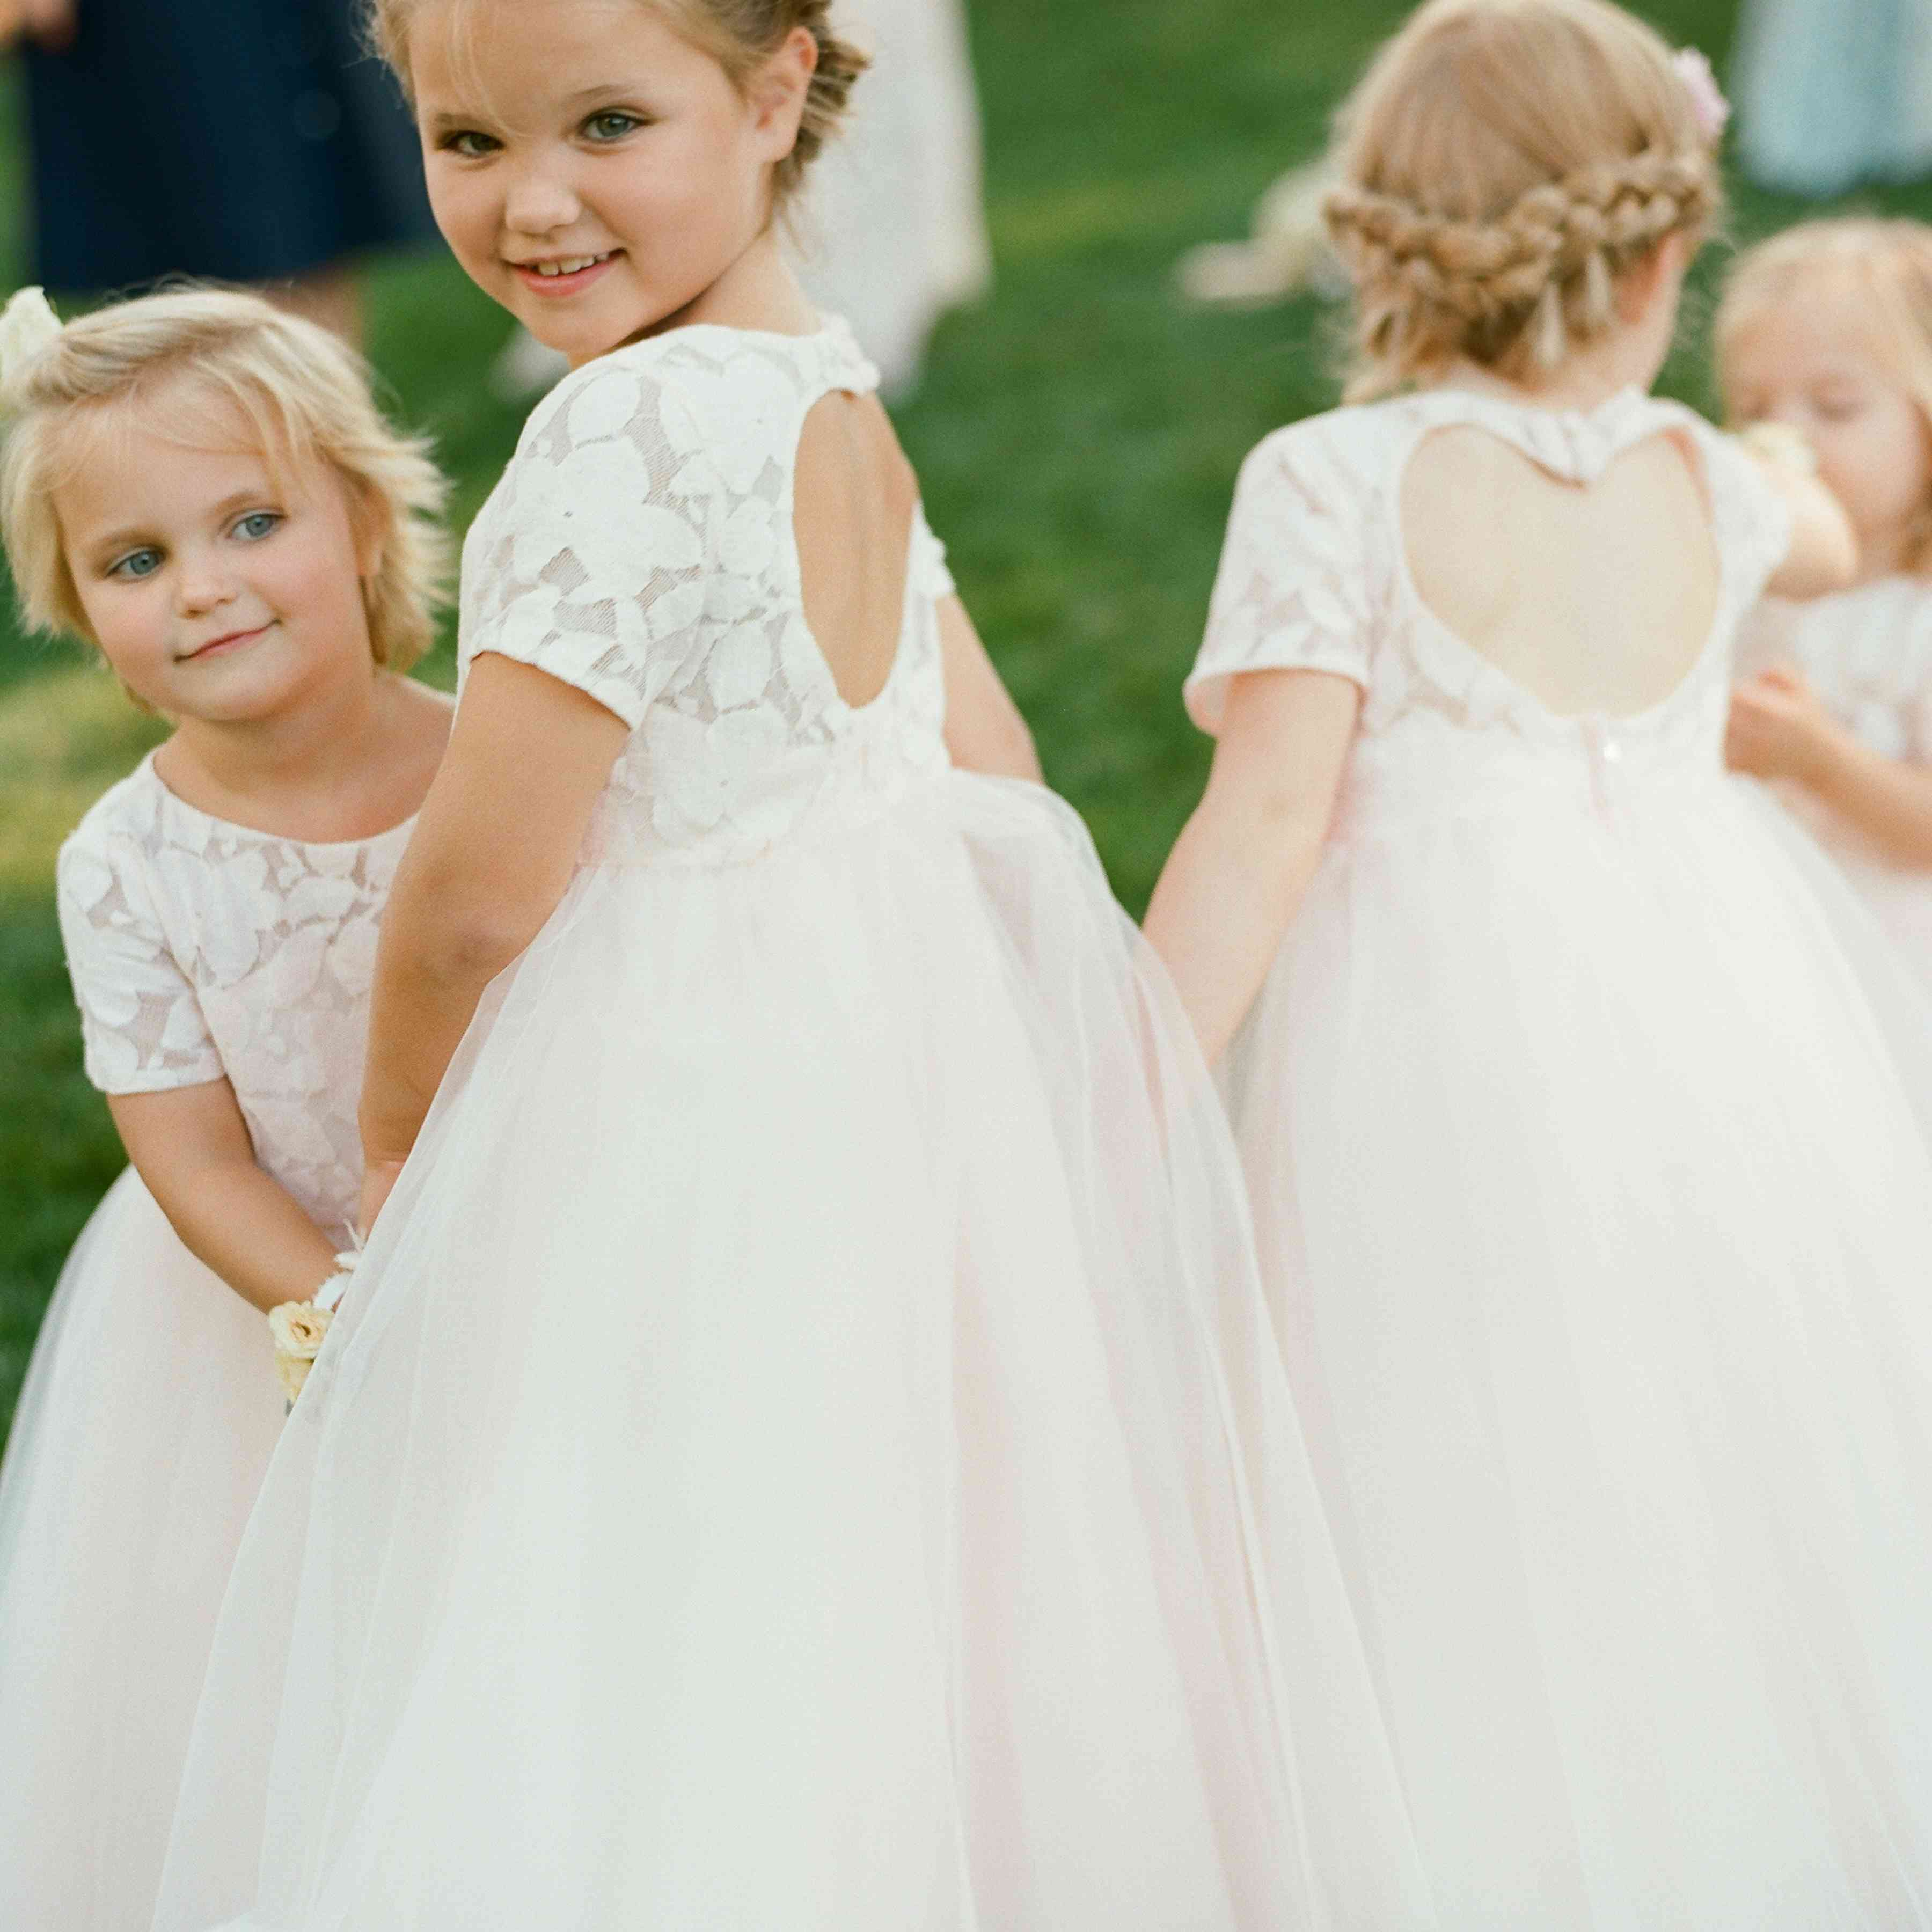 Four flower girls in white dresses with heart-shaped keyhole backs